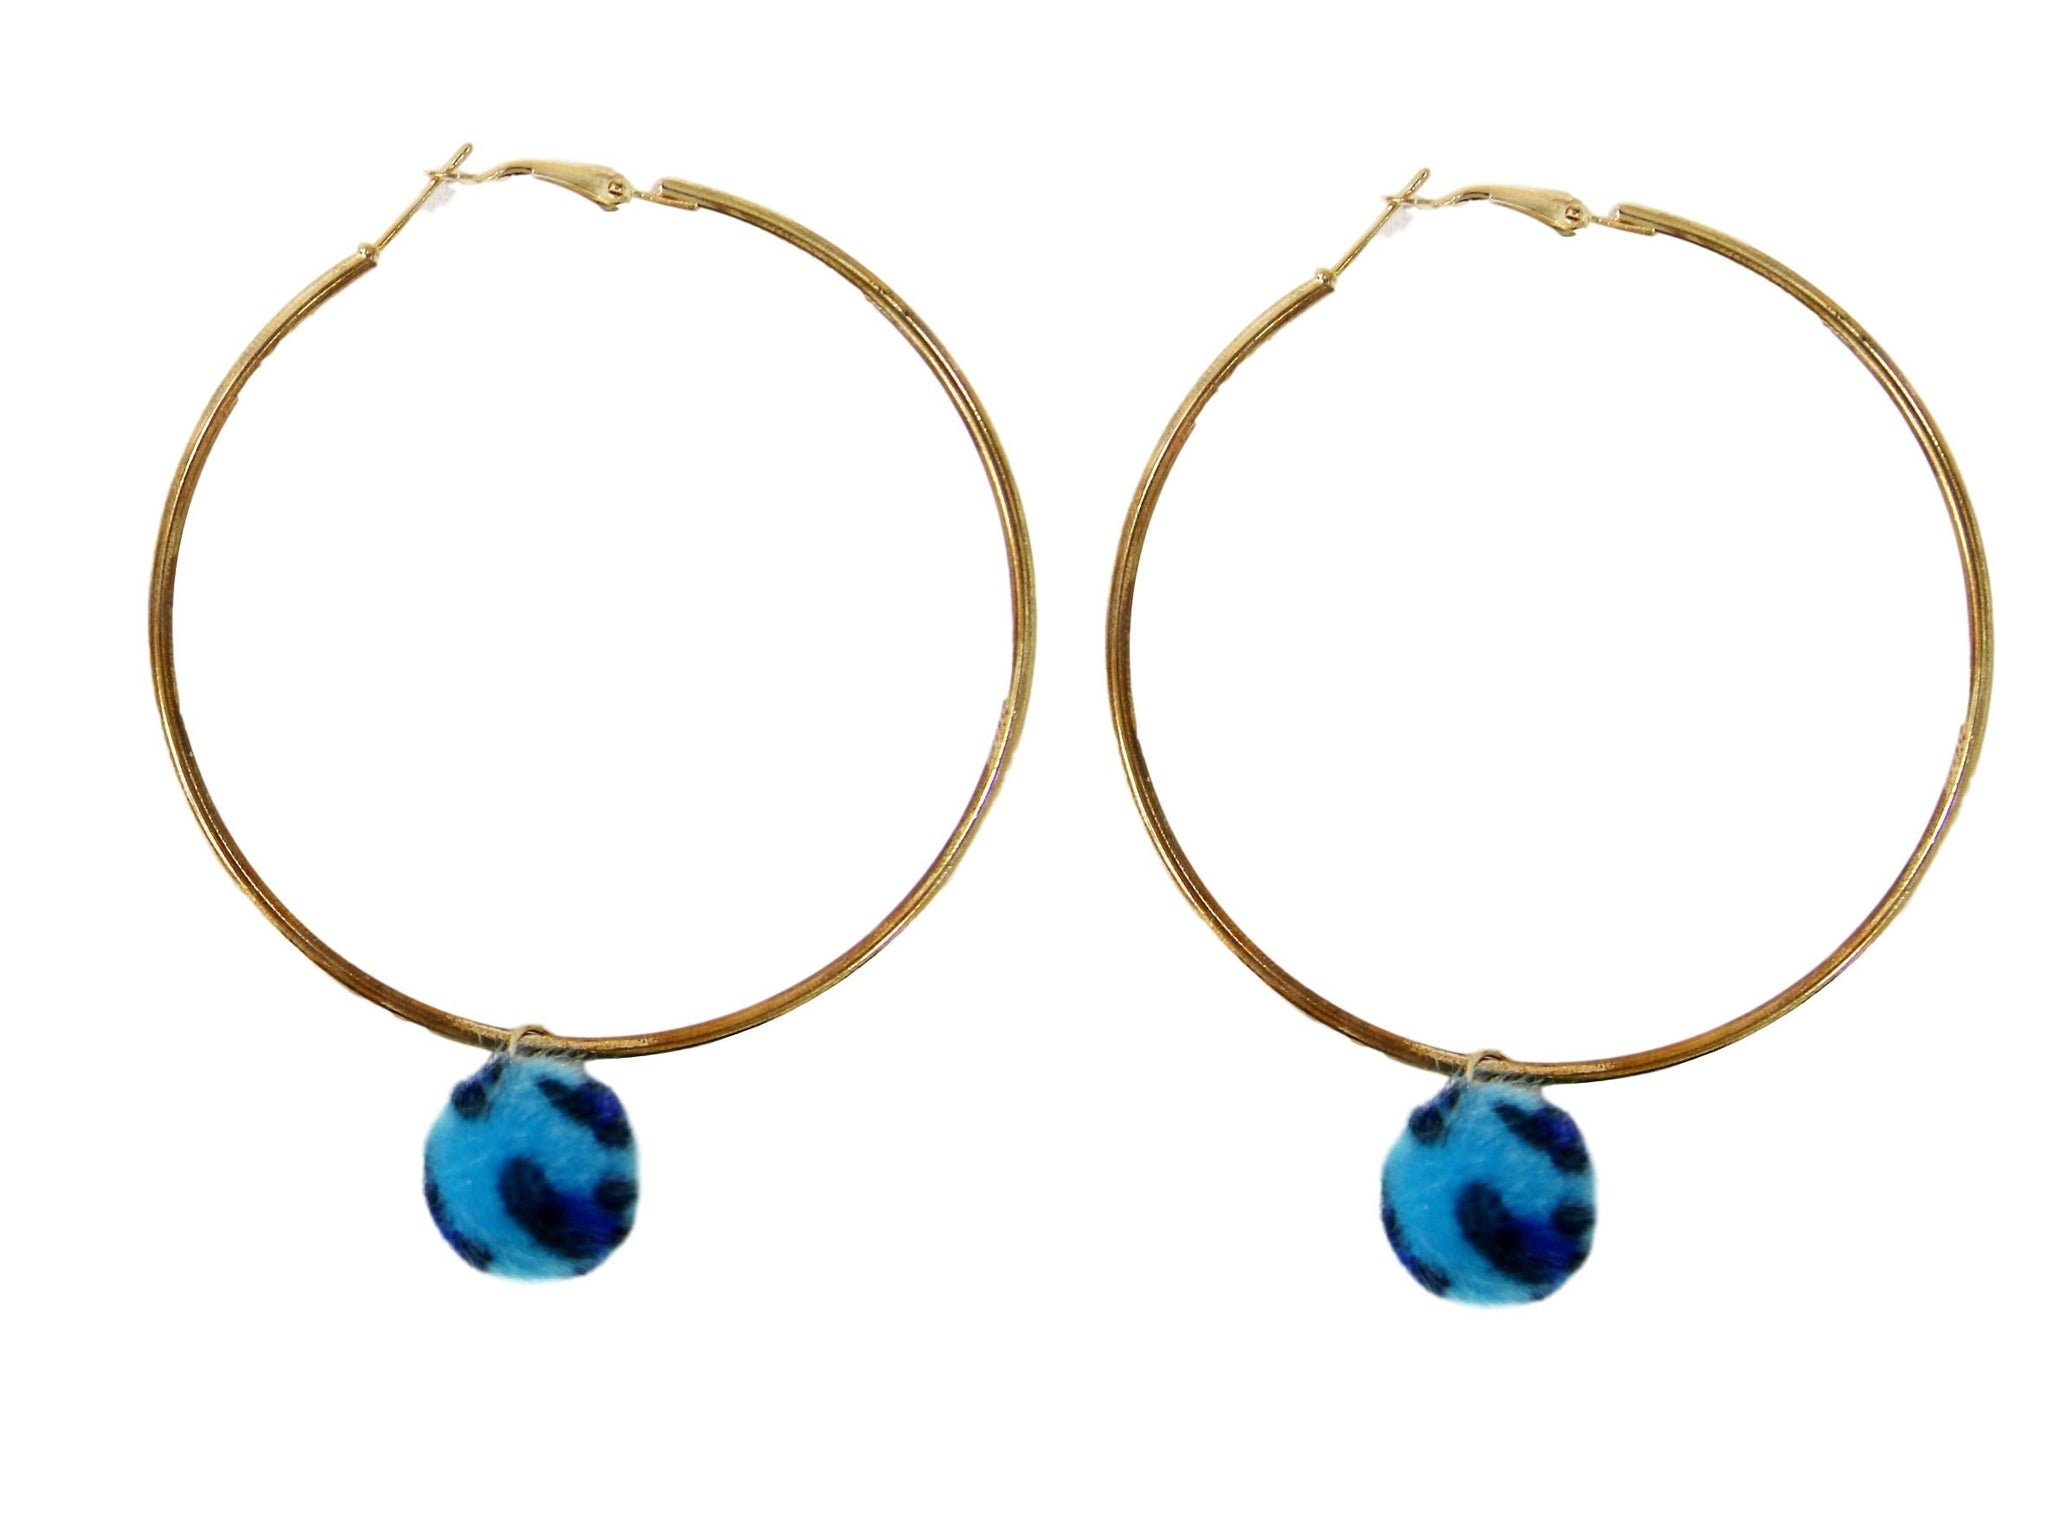 Gold Hoop with Blue Pom Earrings